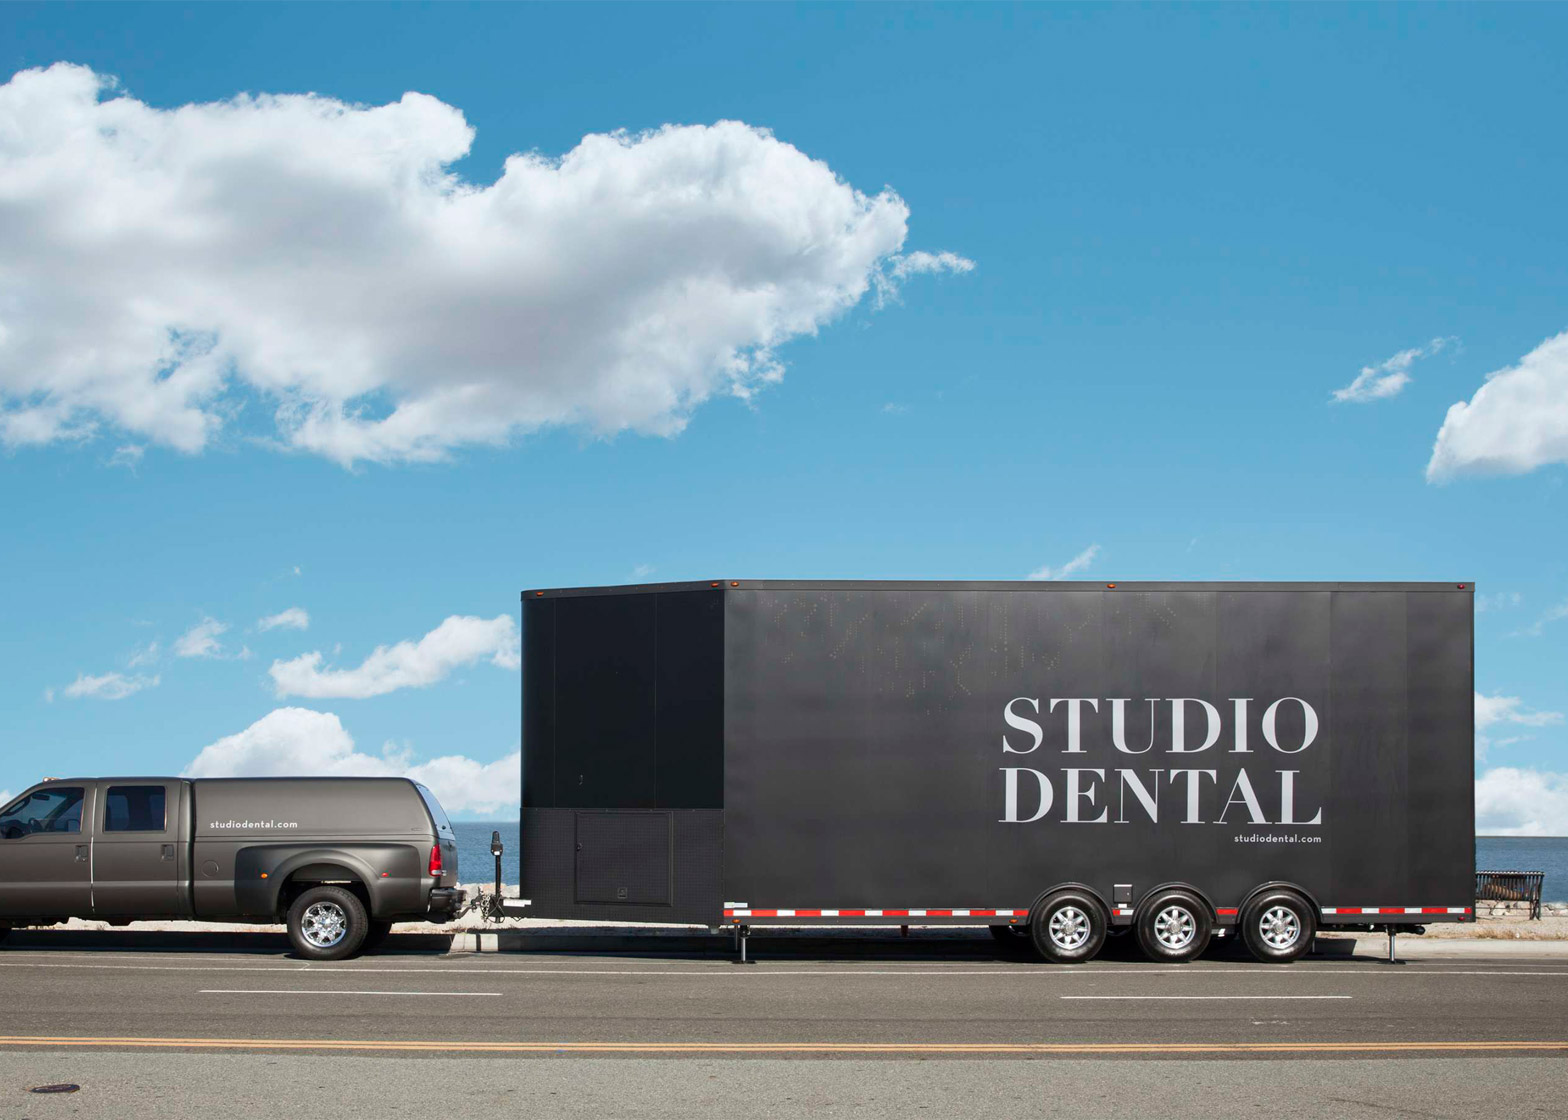 Studio Dental by Montalba Architects